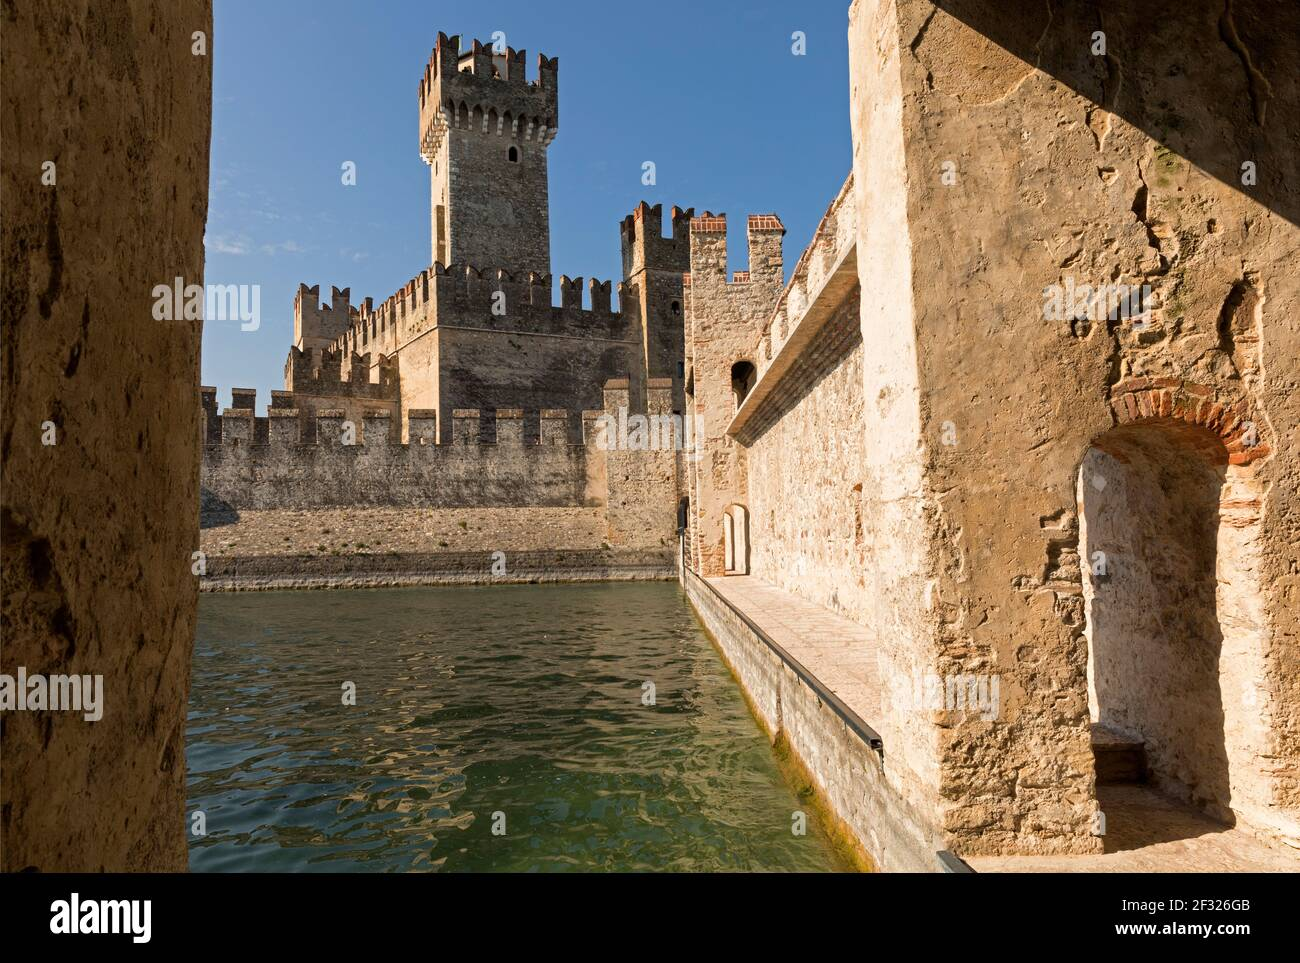 Italy,Sirmione, Lake Garda, the Rocca Scaligera castle built in the 13th century Stock Photo